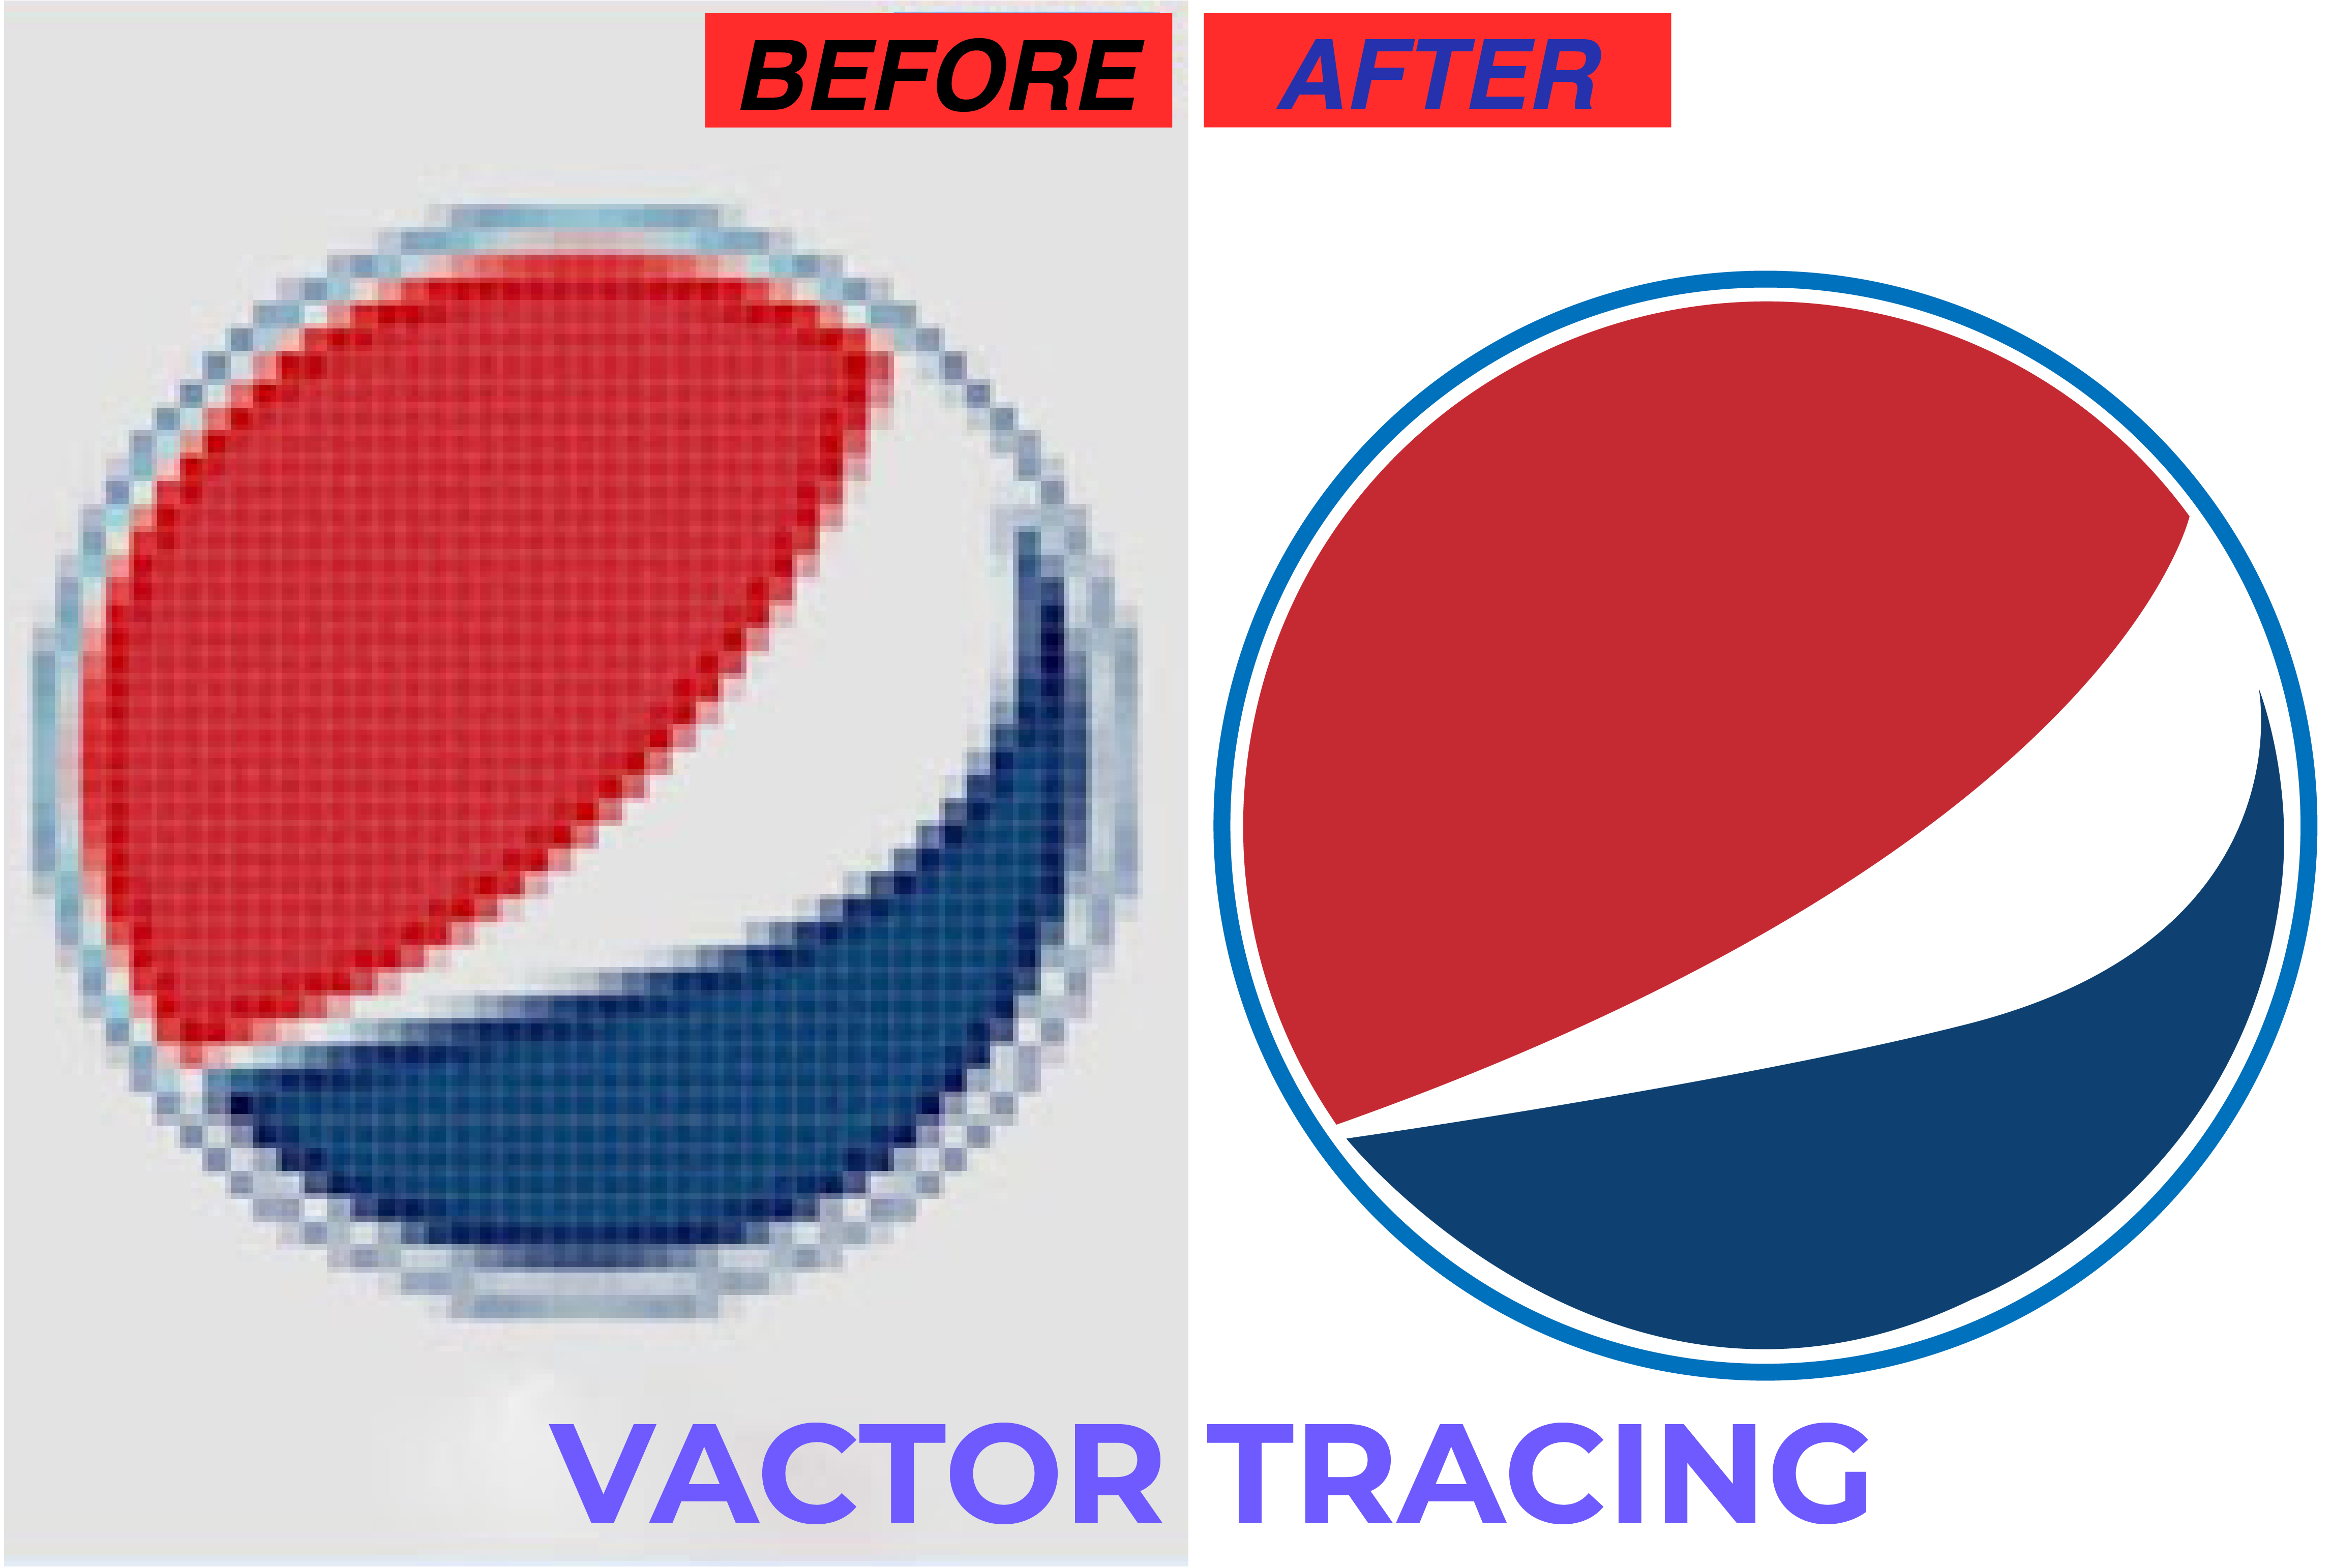 I will vector tracing, icon tracing, vectorise, convert the logo into a vector in 6 hrs